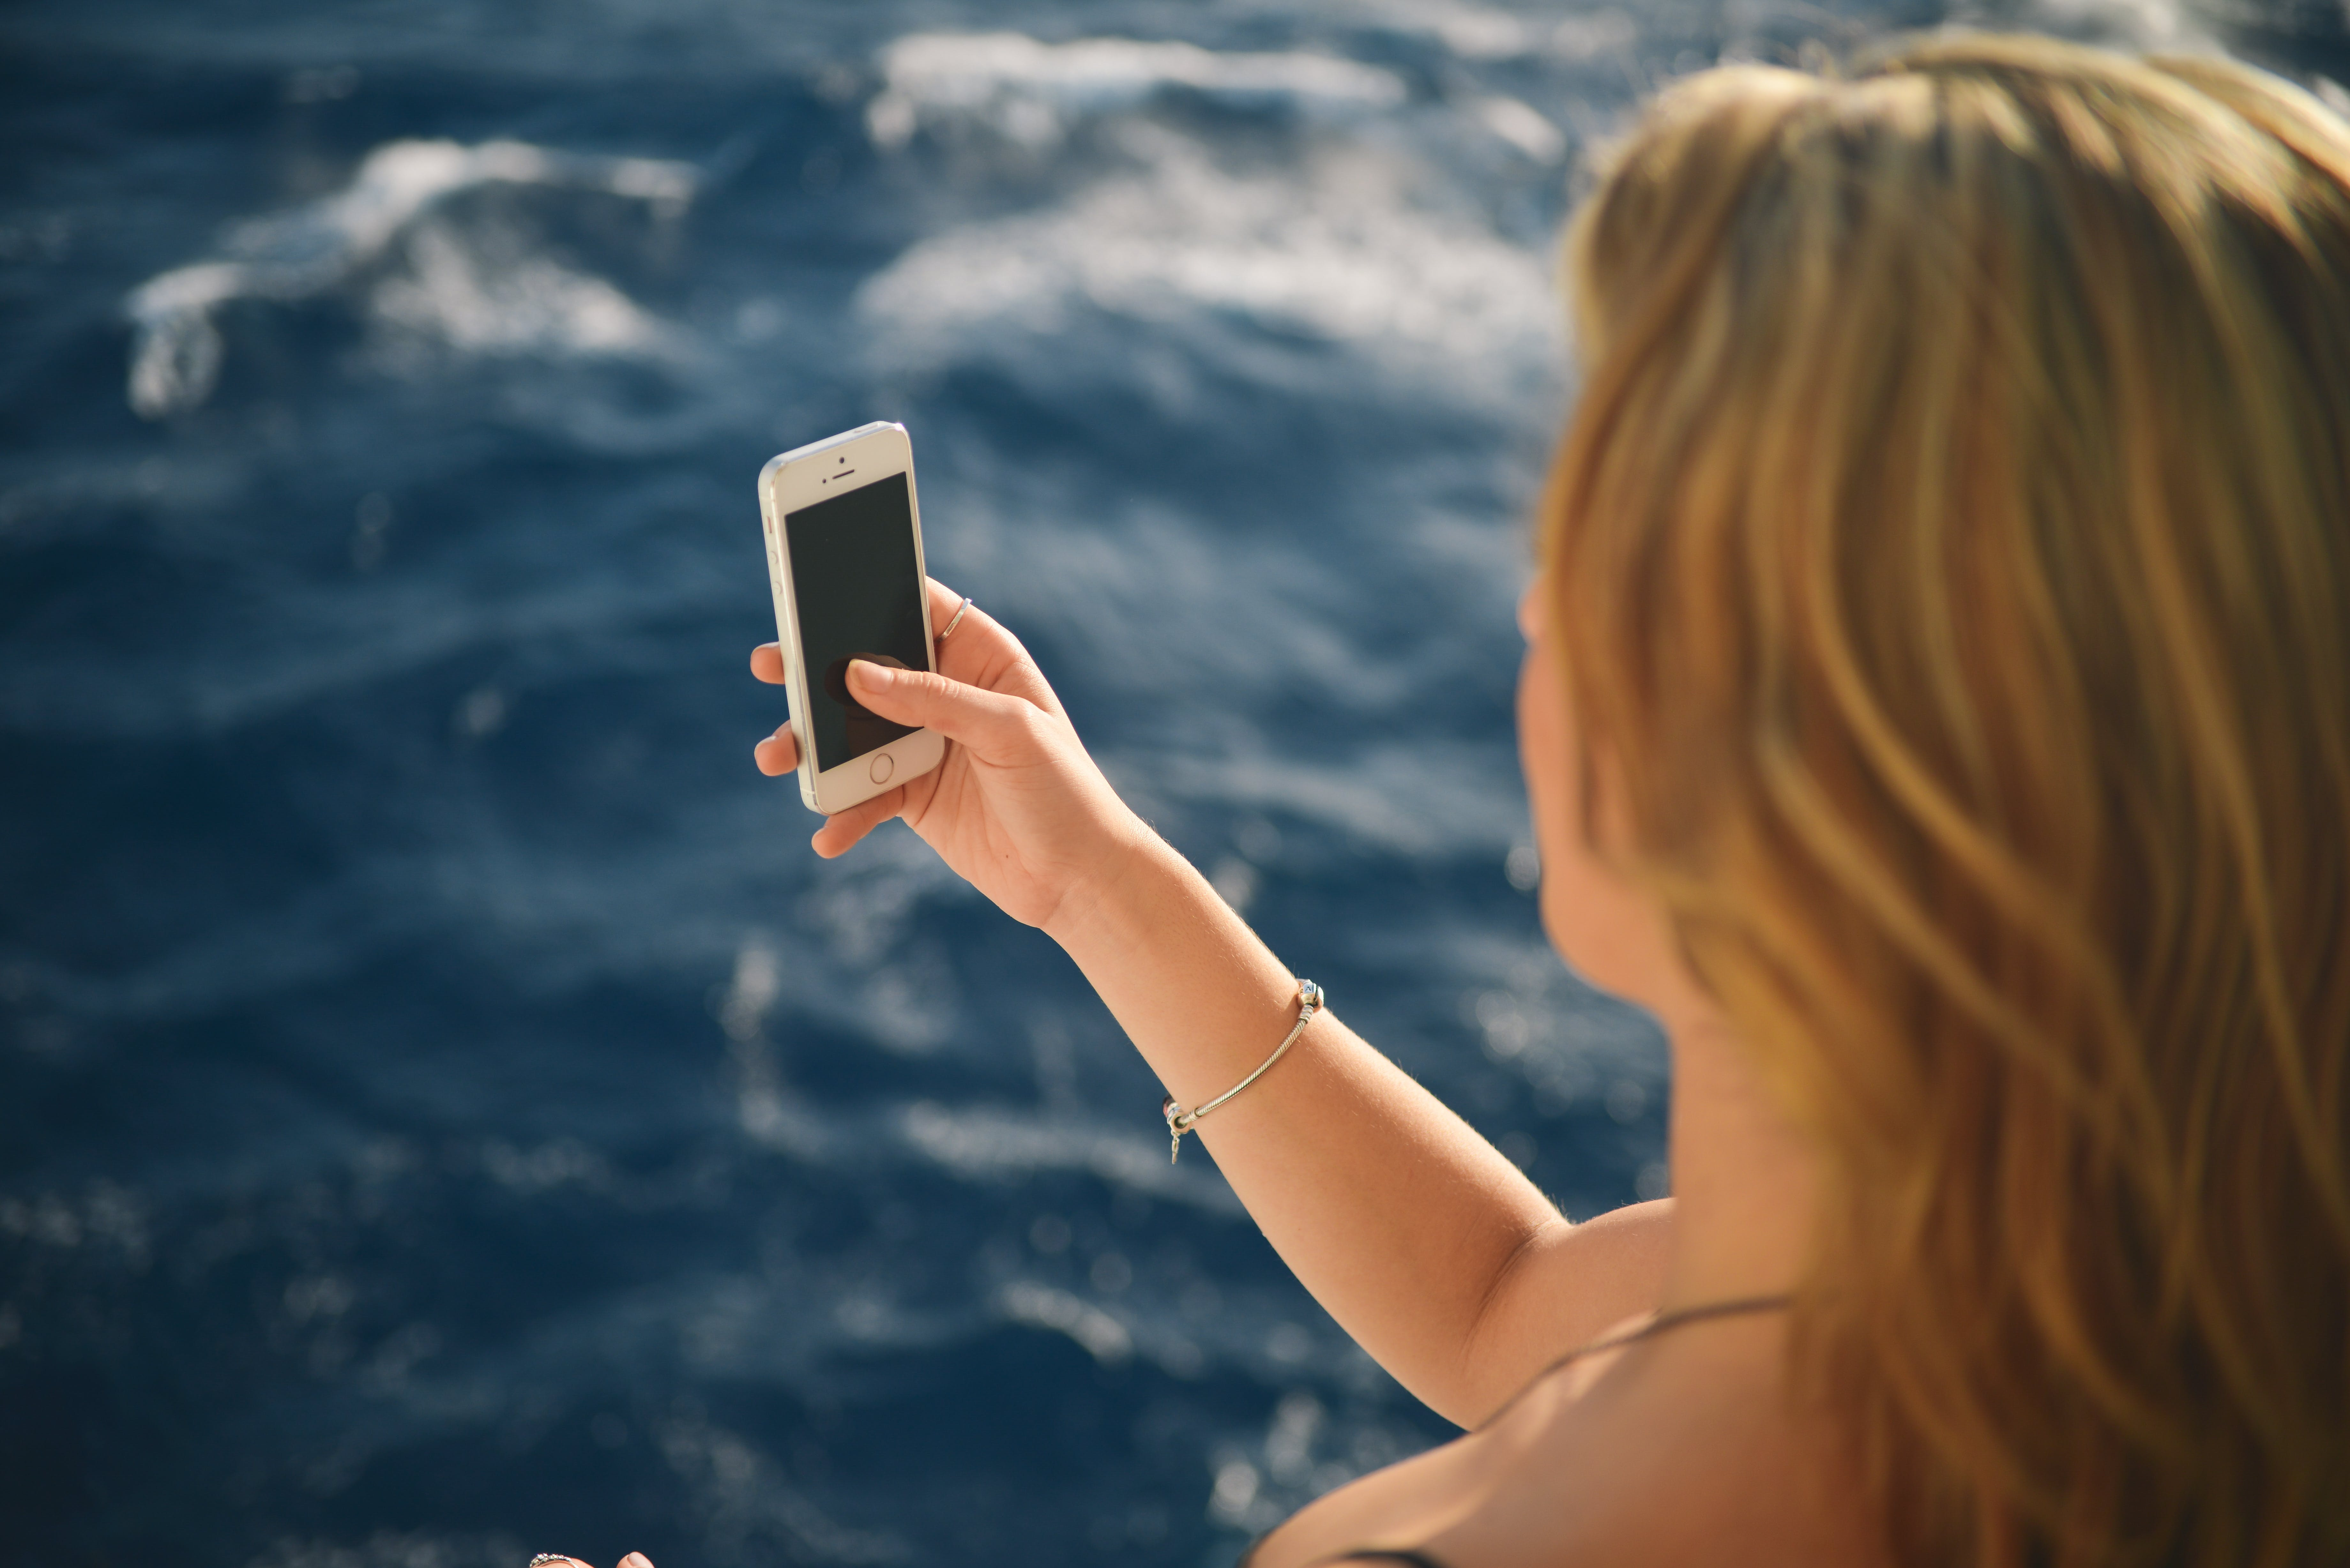 Woman Holding Silver Iphone 5s in Black Screen Near Body of Water